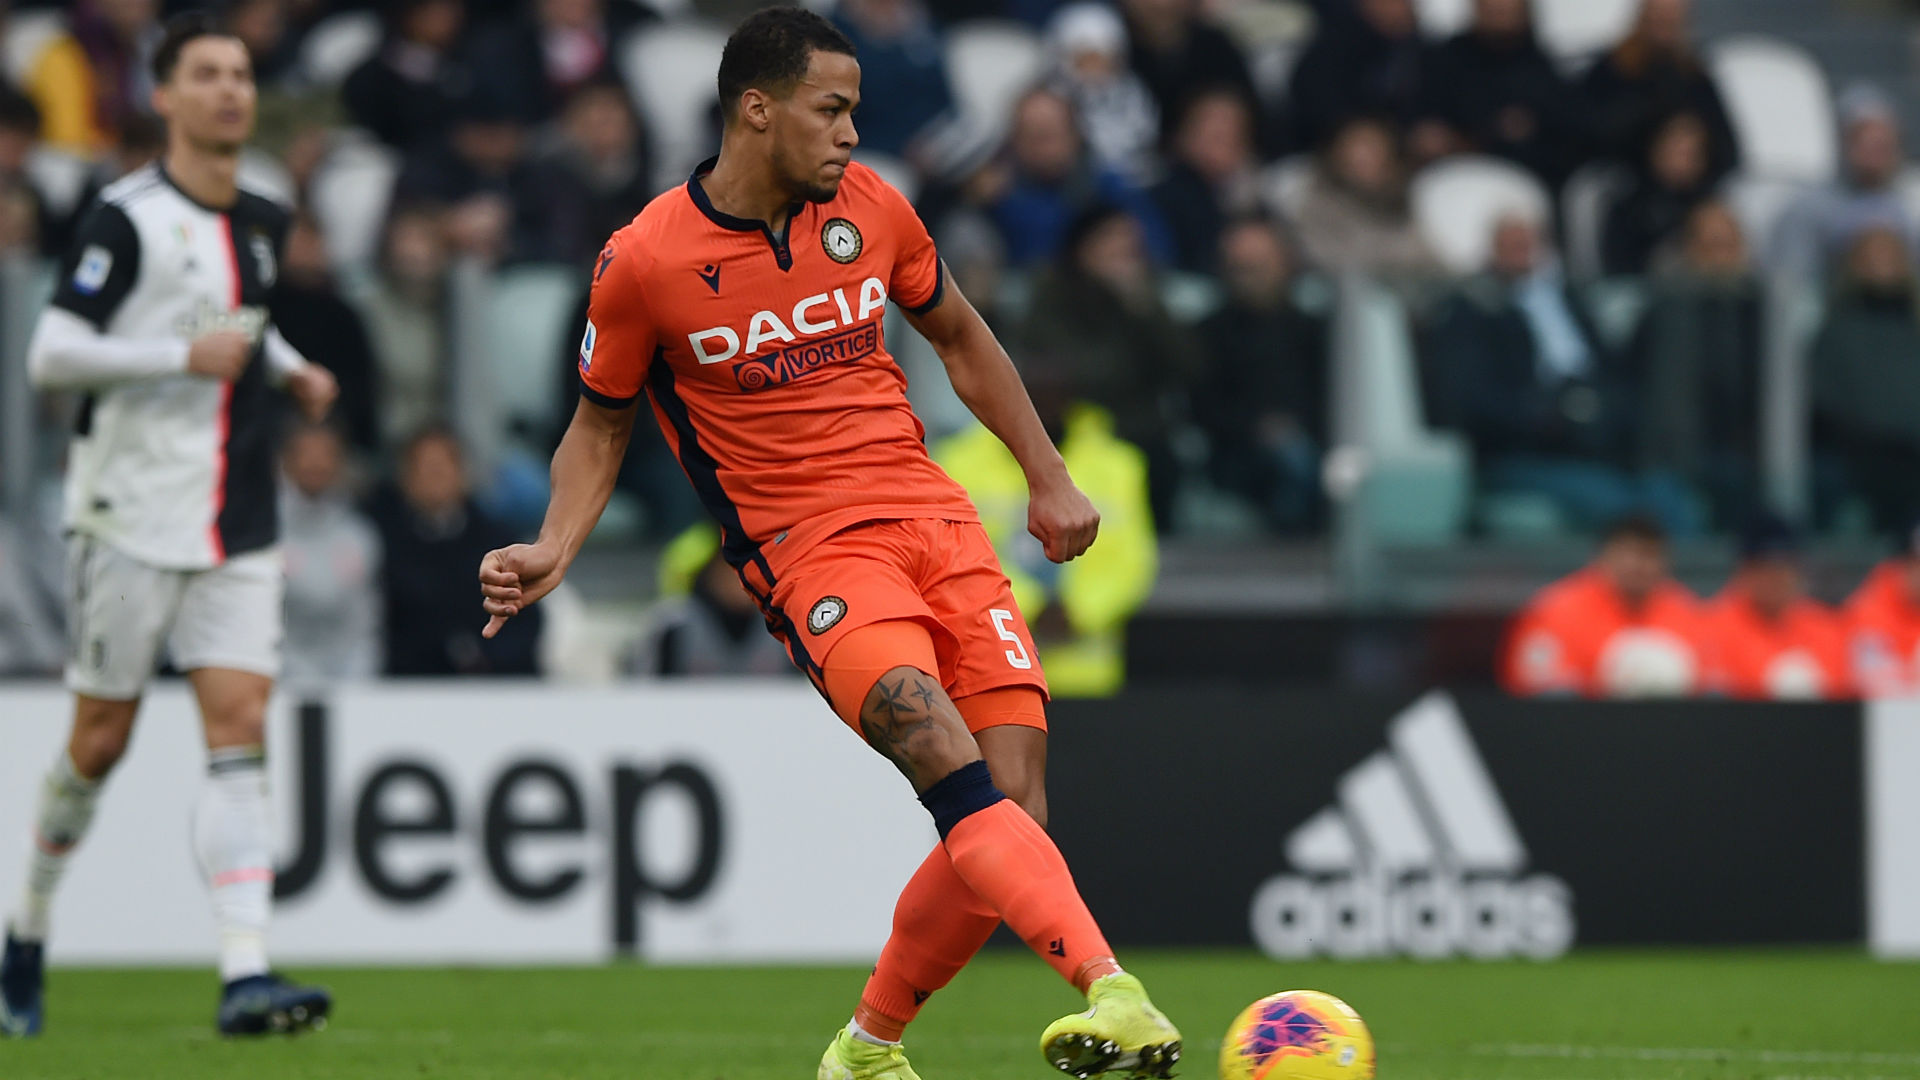 Troost-Ekong's Udinese continue winless run against Atalanta